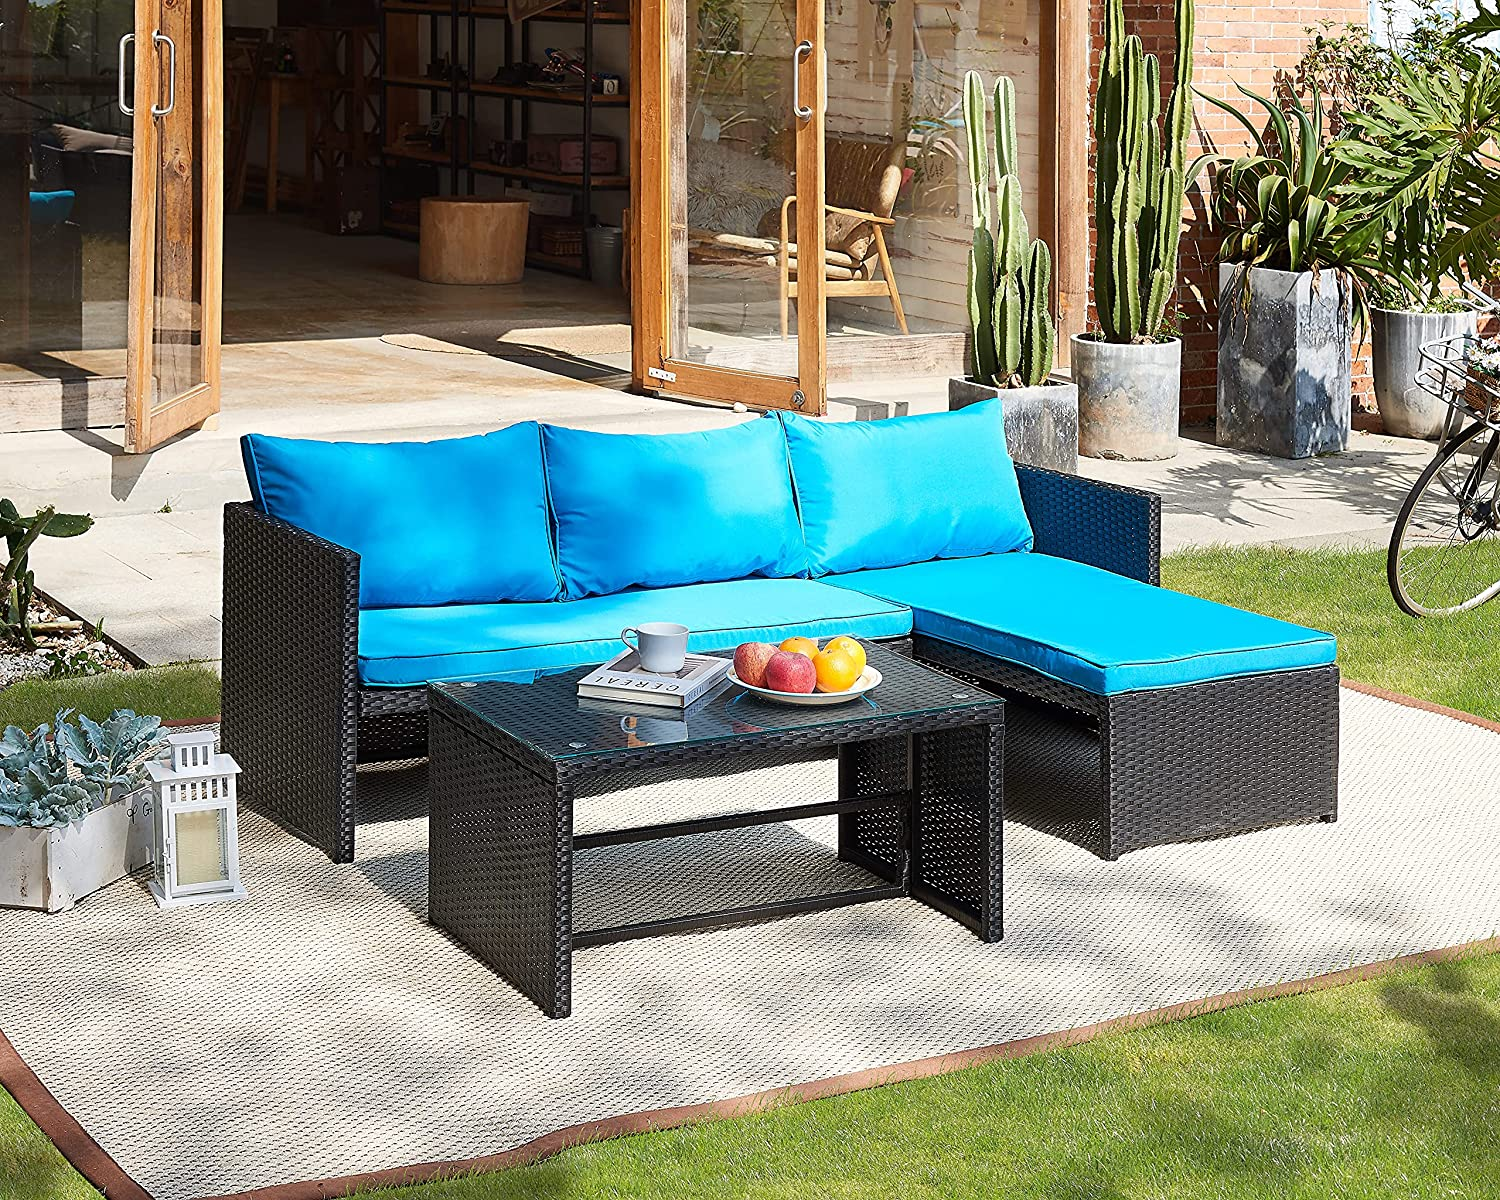 3 Pieces Patio Furniture Sectional トラスト 新作製品 世界最高品質人気 PE 3-Piece Ratt Sets Outdoor